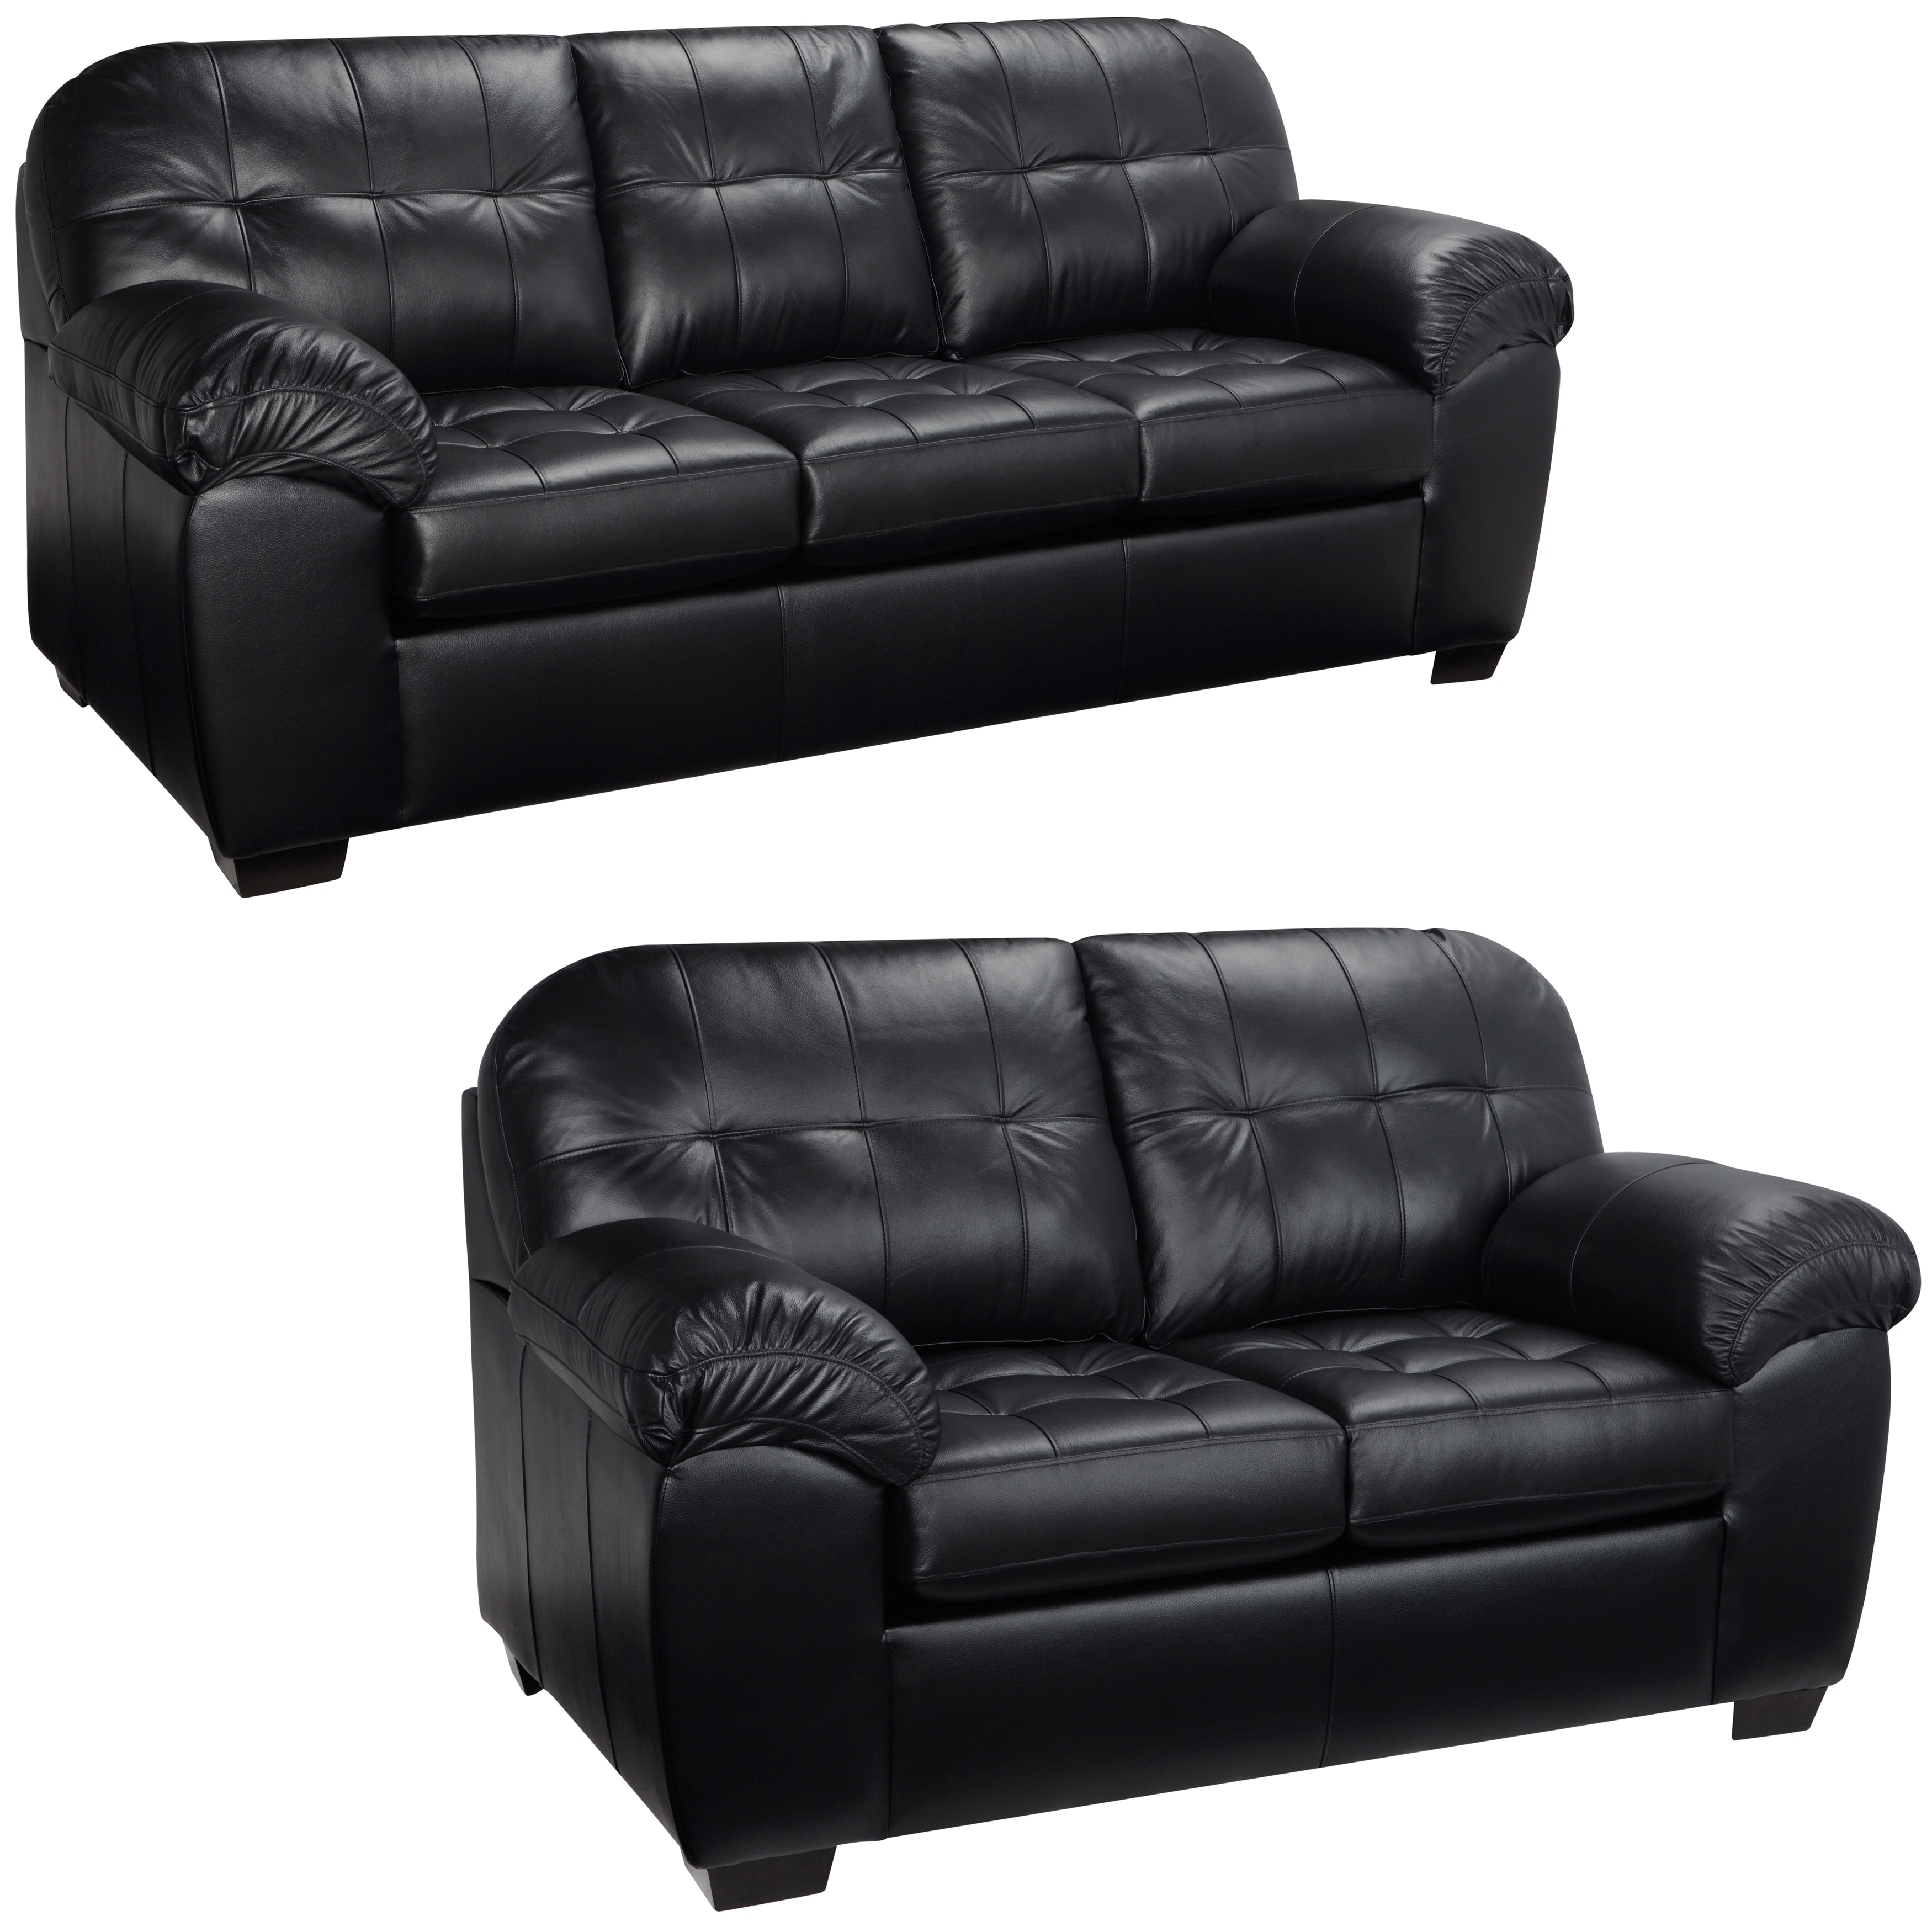 gray sectional purple grey loveseat and black uk chaise small large rattan set comfortable fabric corduroy sleeper white shaped leather wide big velvet blue sofas tufted sofa of size full rosiesultan outdoor smoke cream l furniture cheap cheapest with light couch loveseats gallery amazing